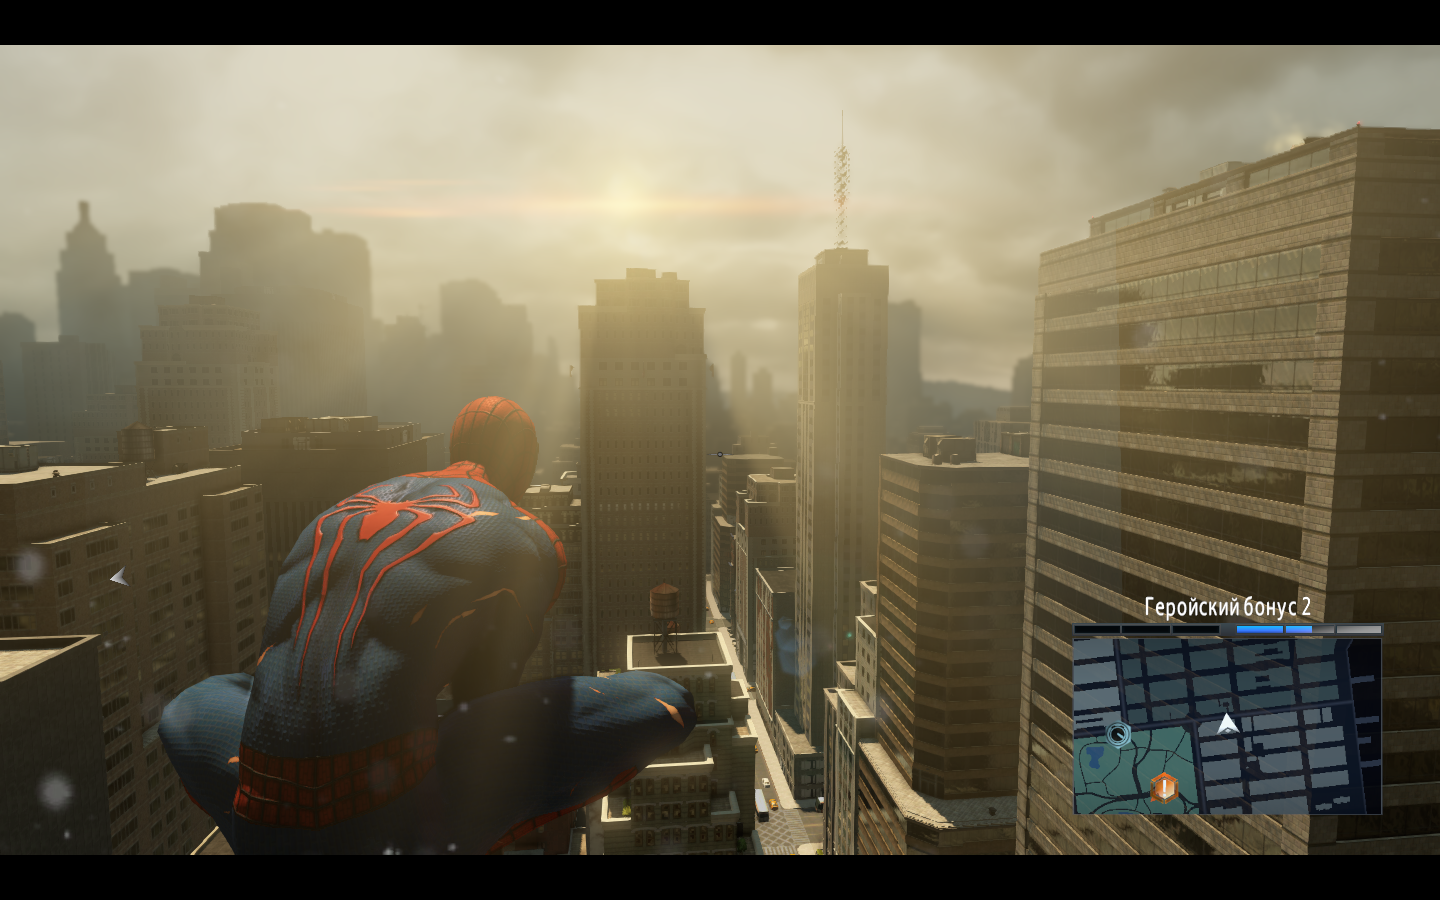 The Amazing Spider-Man 2 27.08.2018 20_02_57.png - -